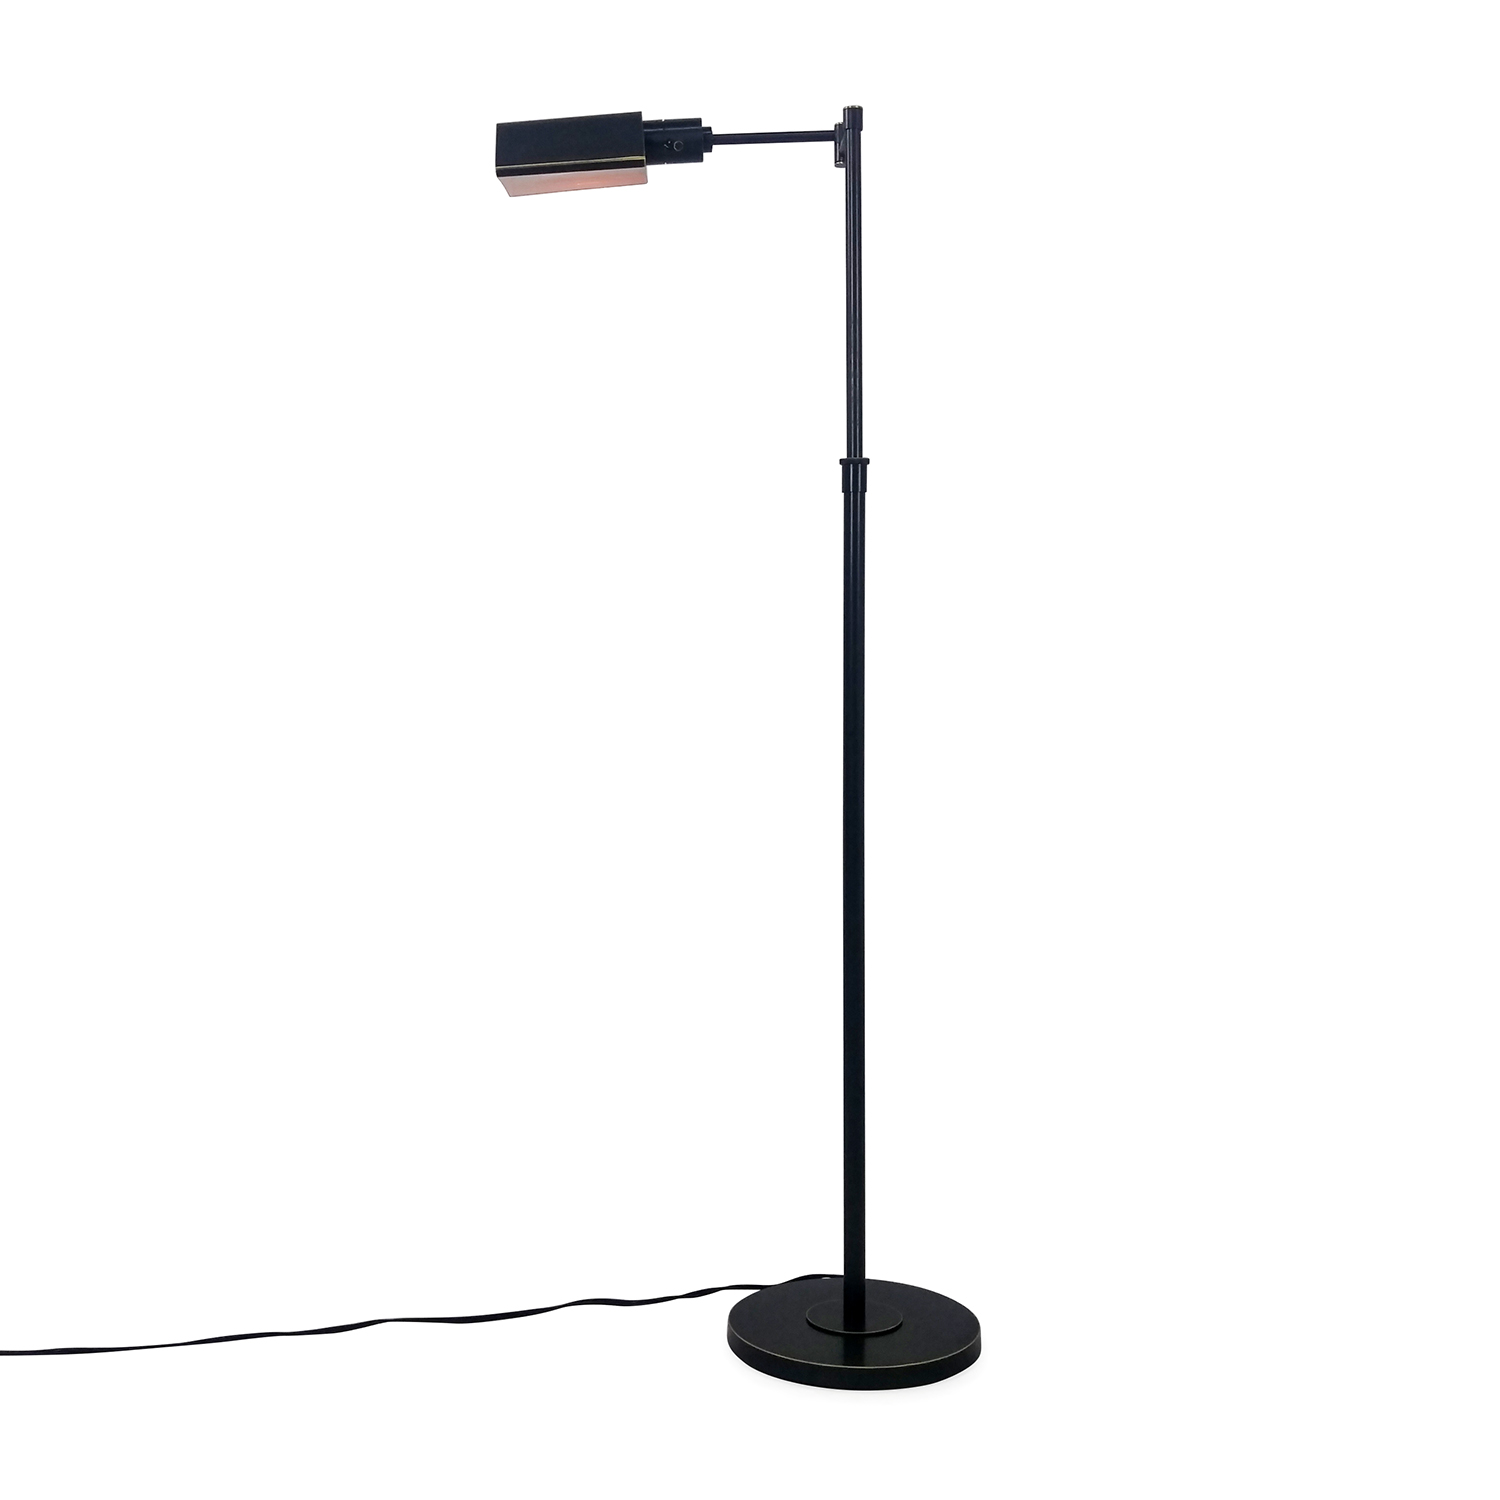 Adjustable Floor Lamp in Copper Finish dimensions